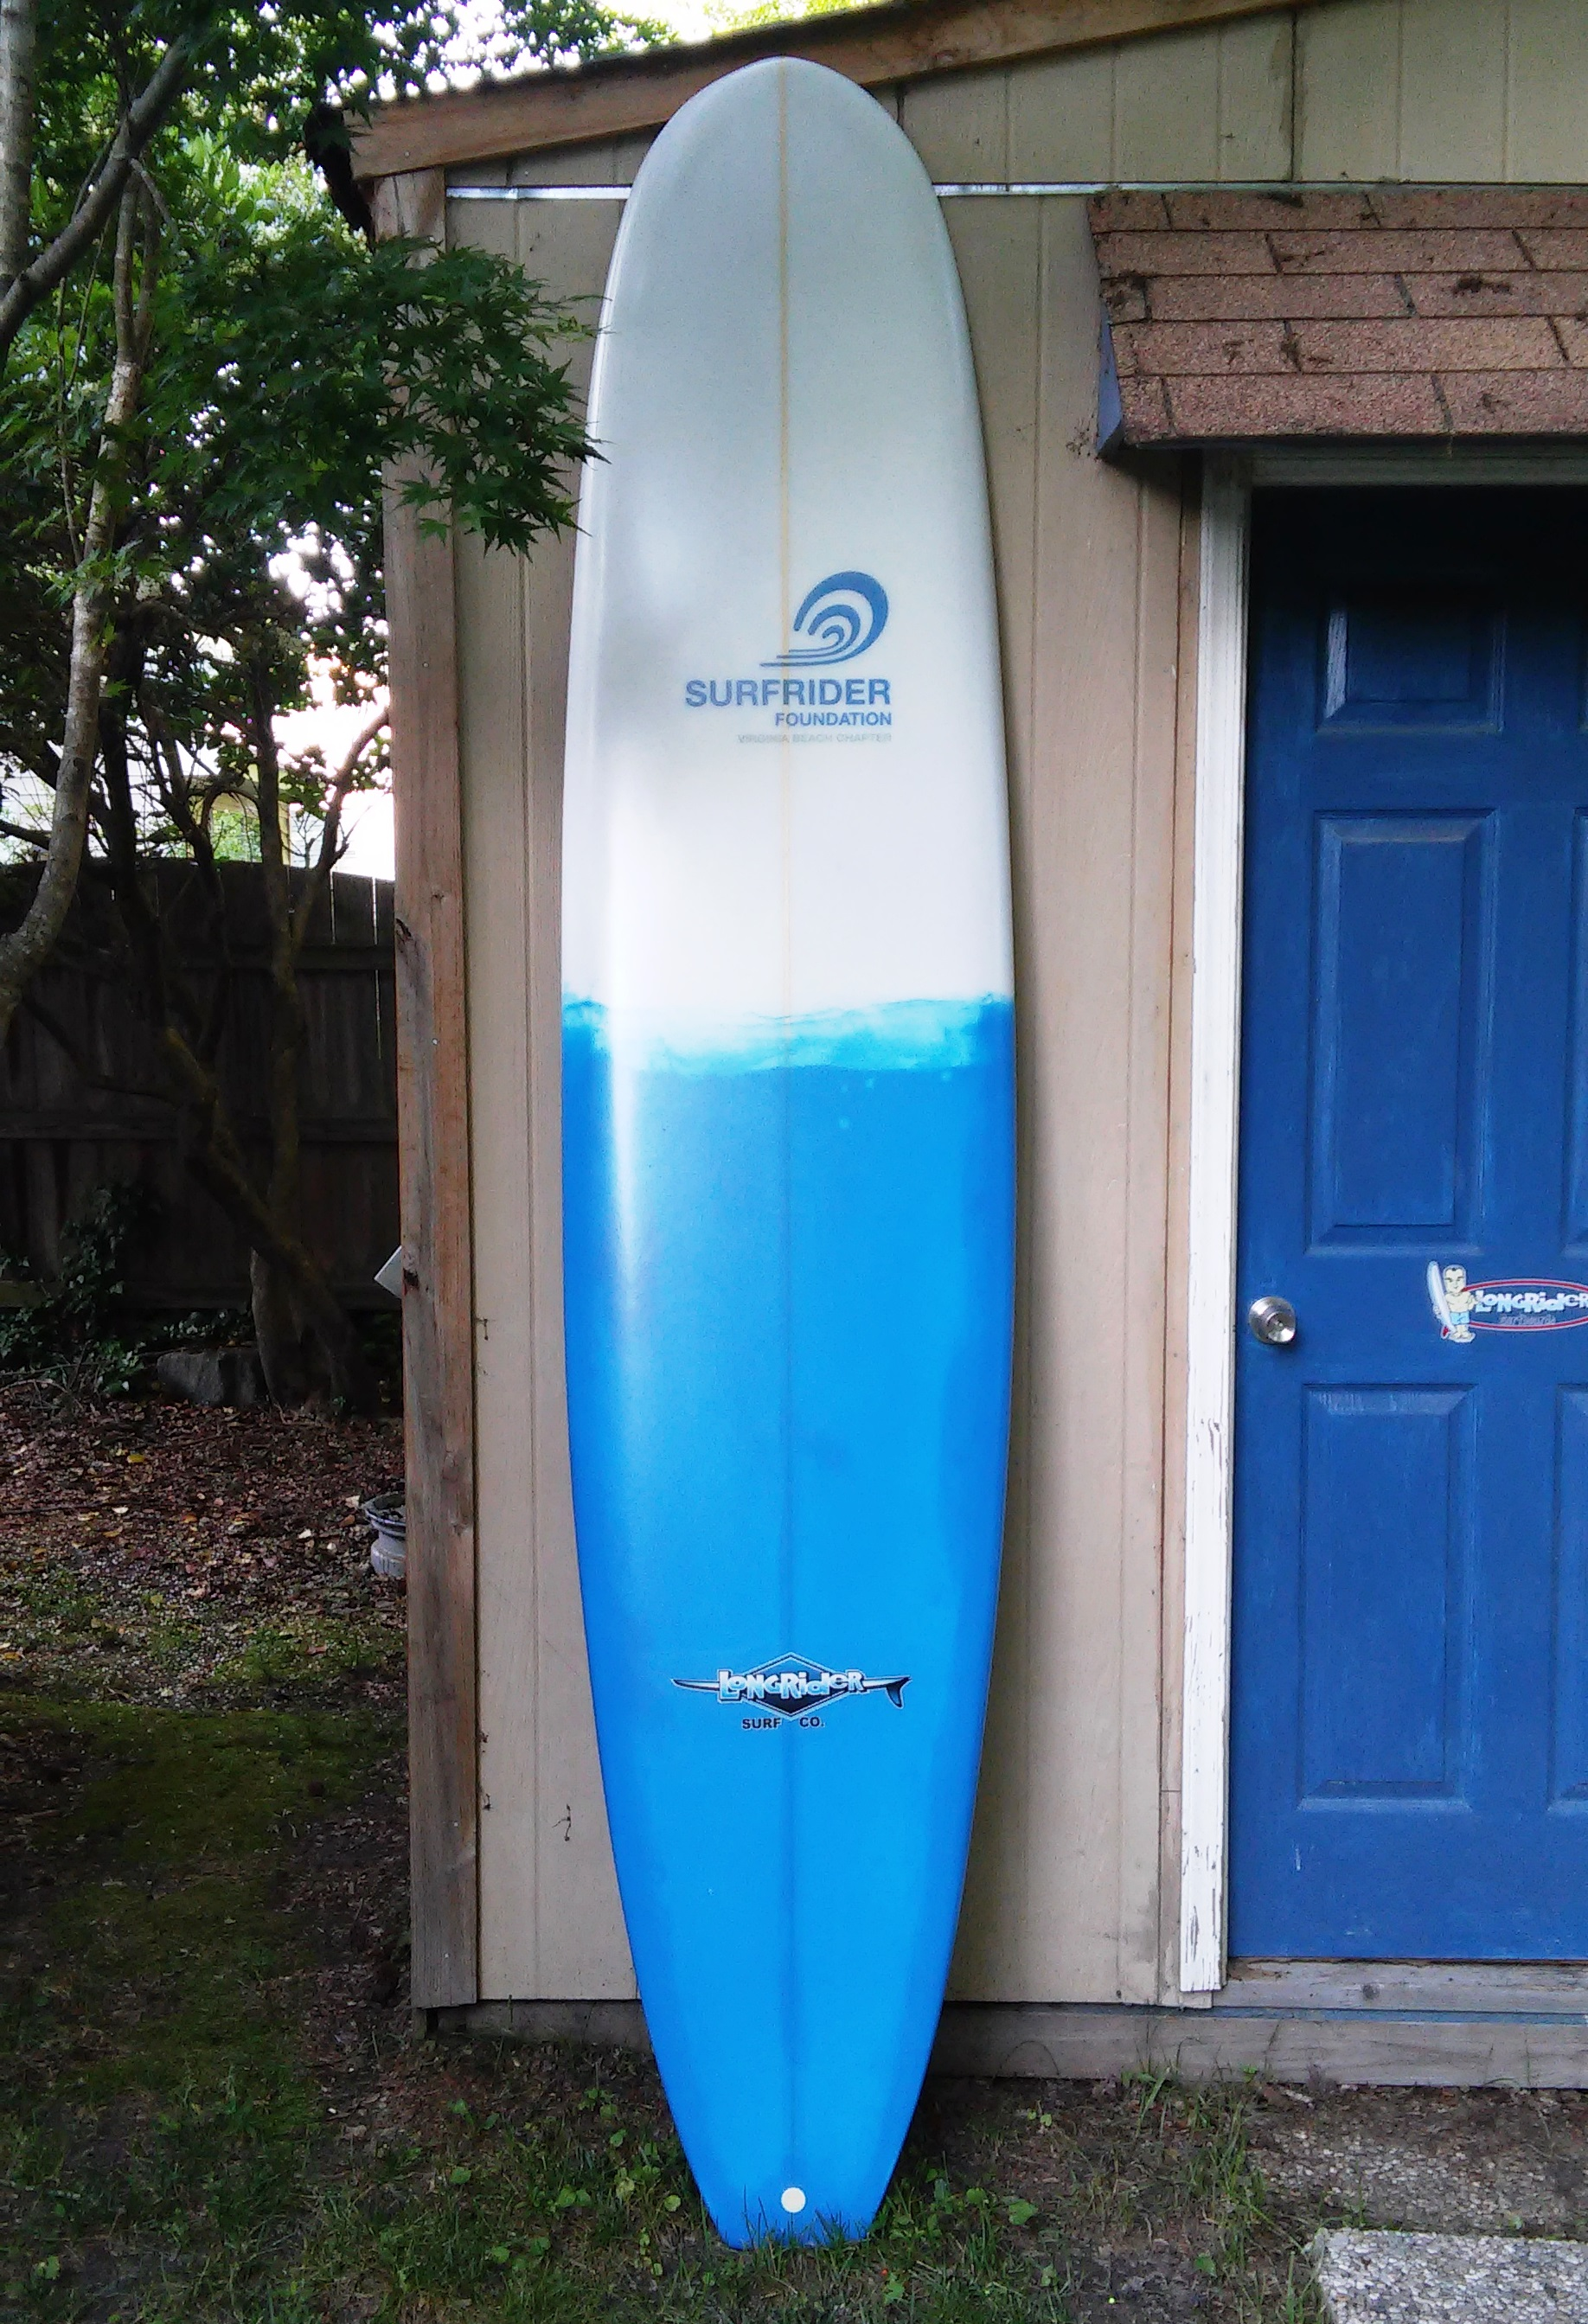 Win this Surfboard!